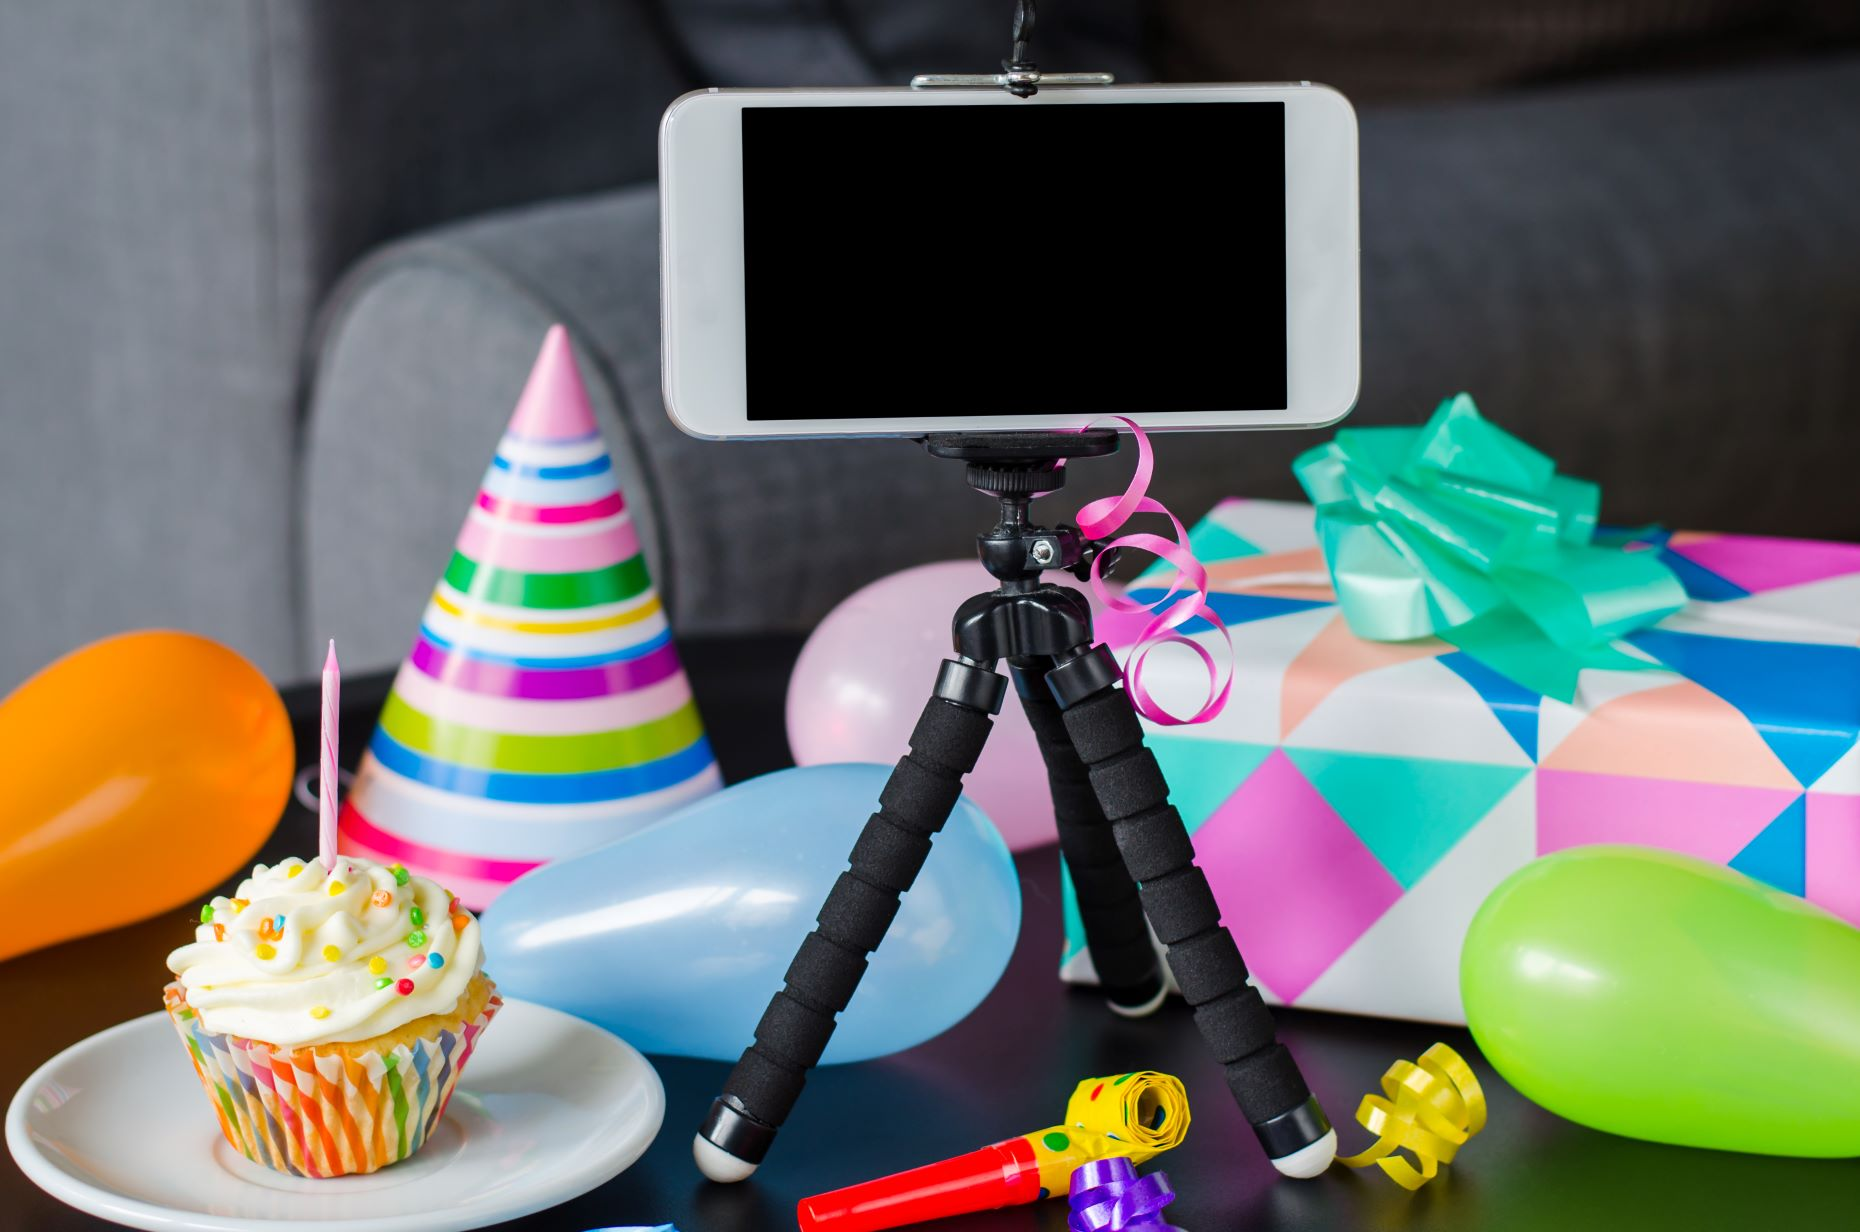 Birthday party decor around an iPhone on a mini tripod